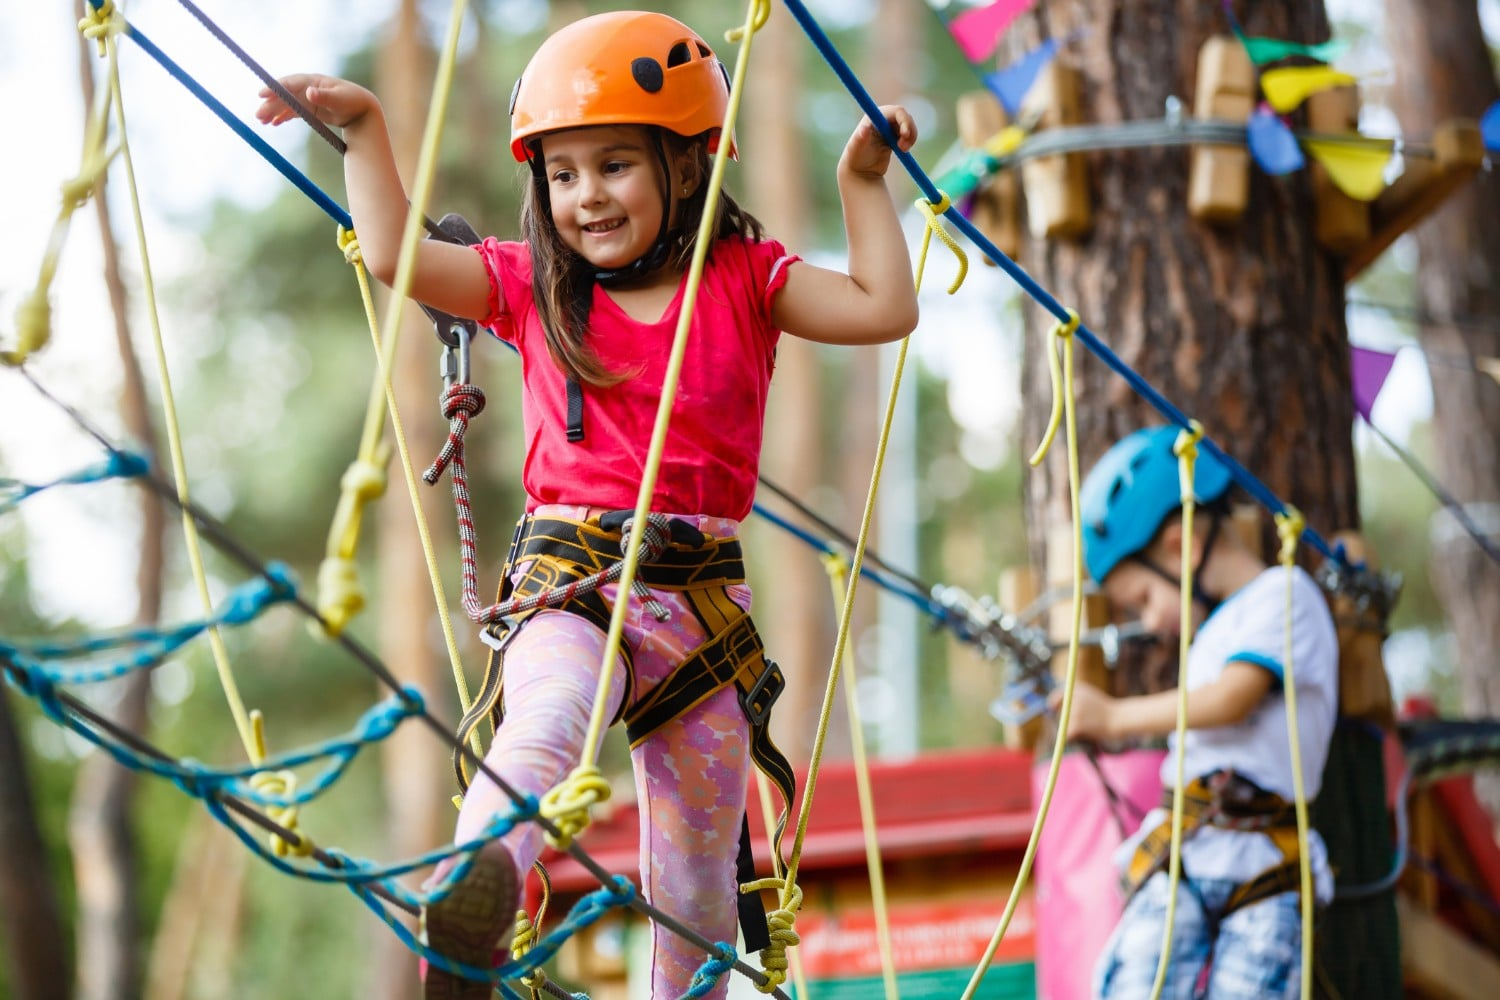 Little girl climbs on ropes course